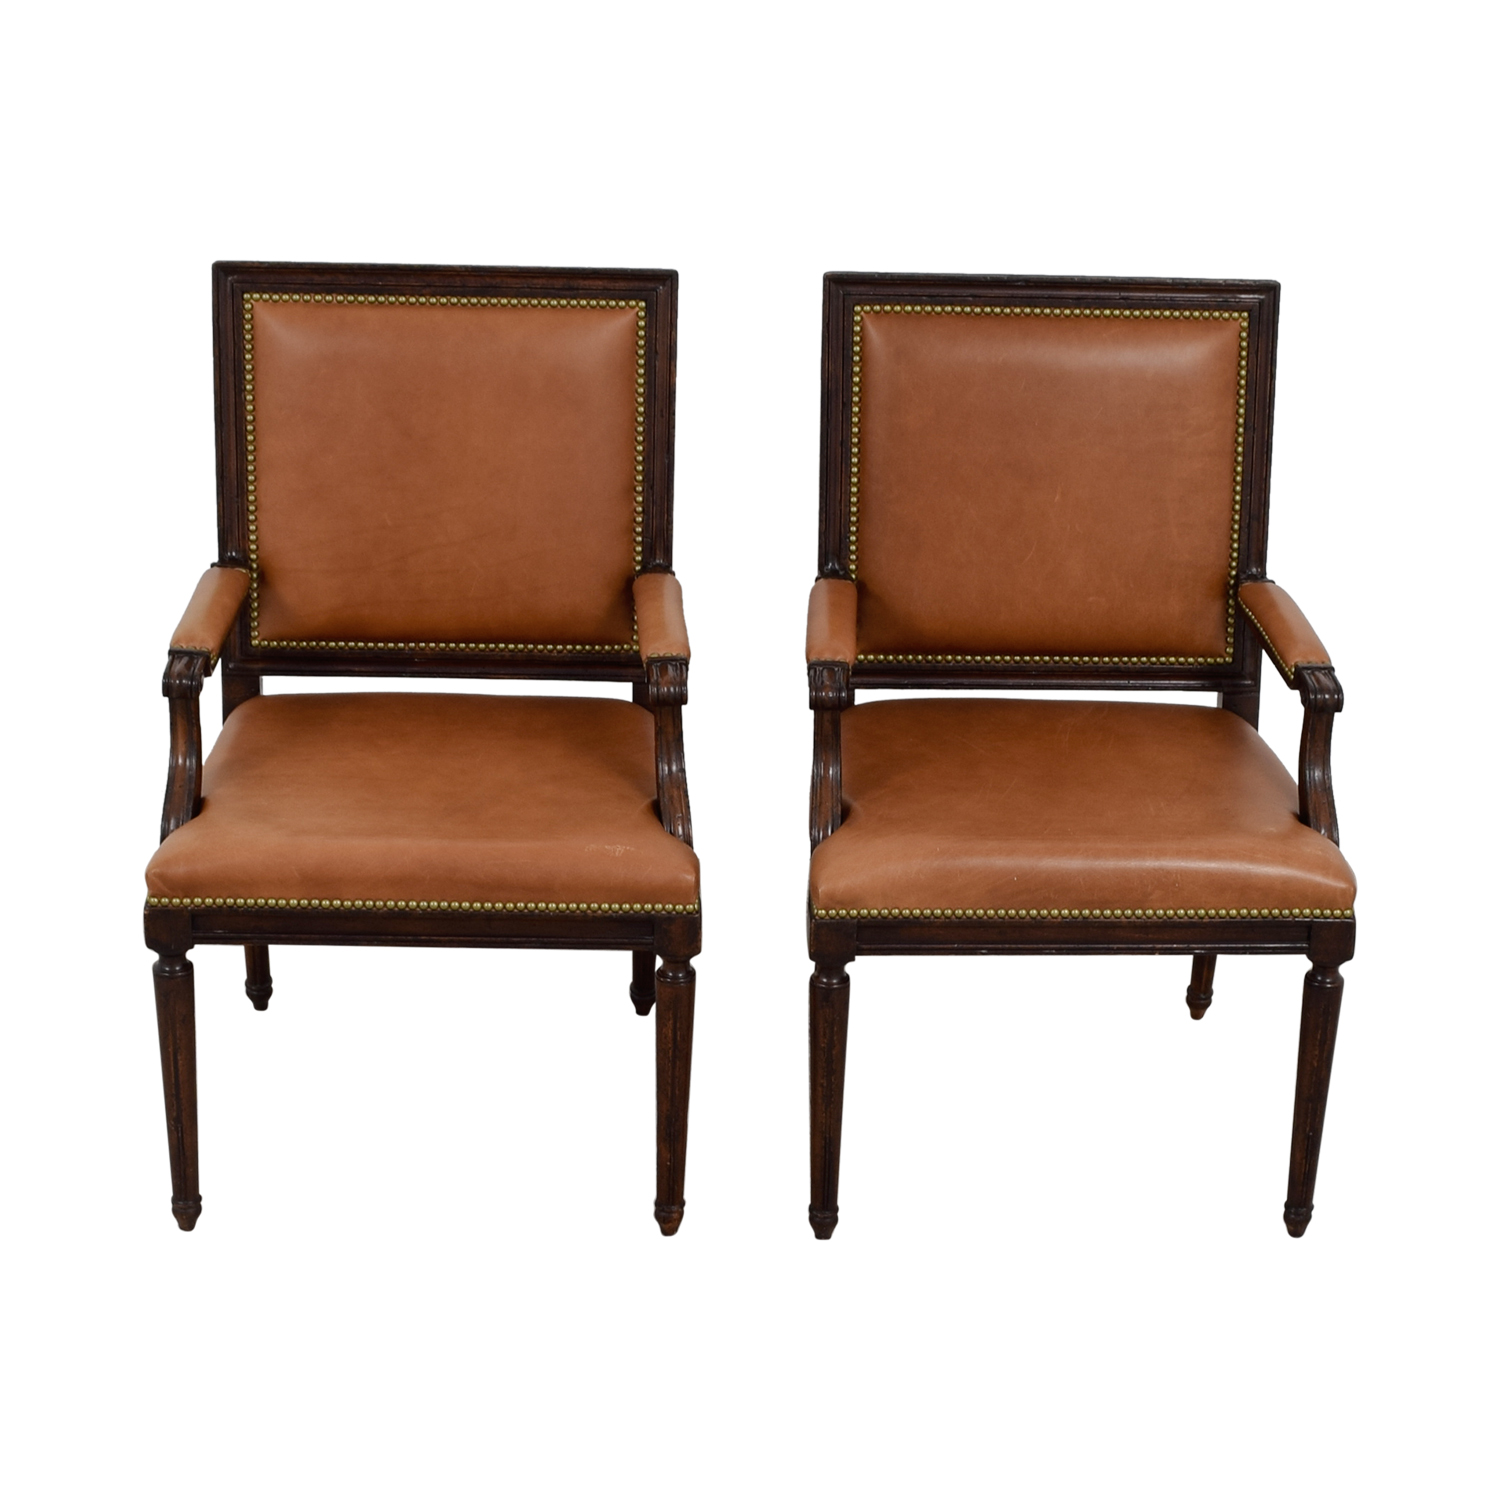 Leather Dining Chairs With Nailheads 64 Off Henredon Henredon Brown Leather Nailhead Accent